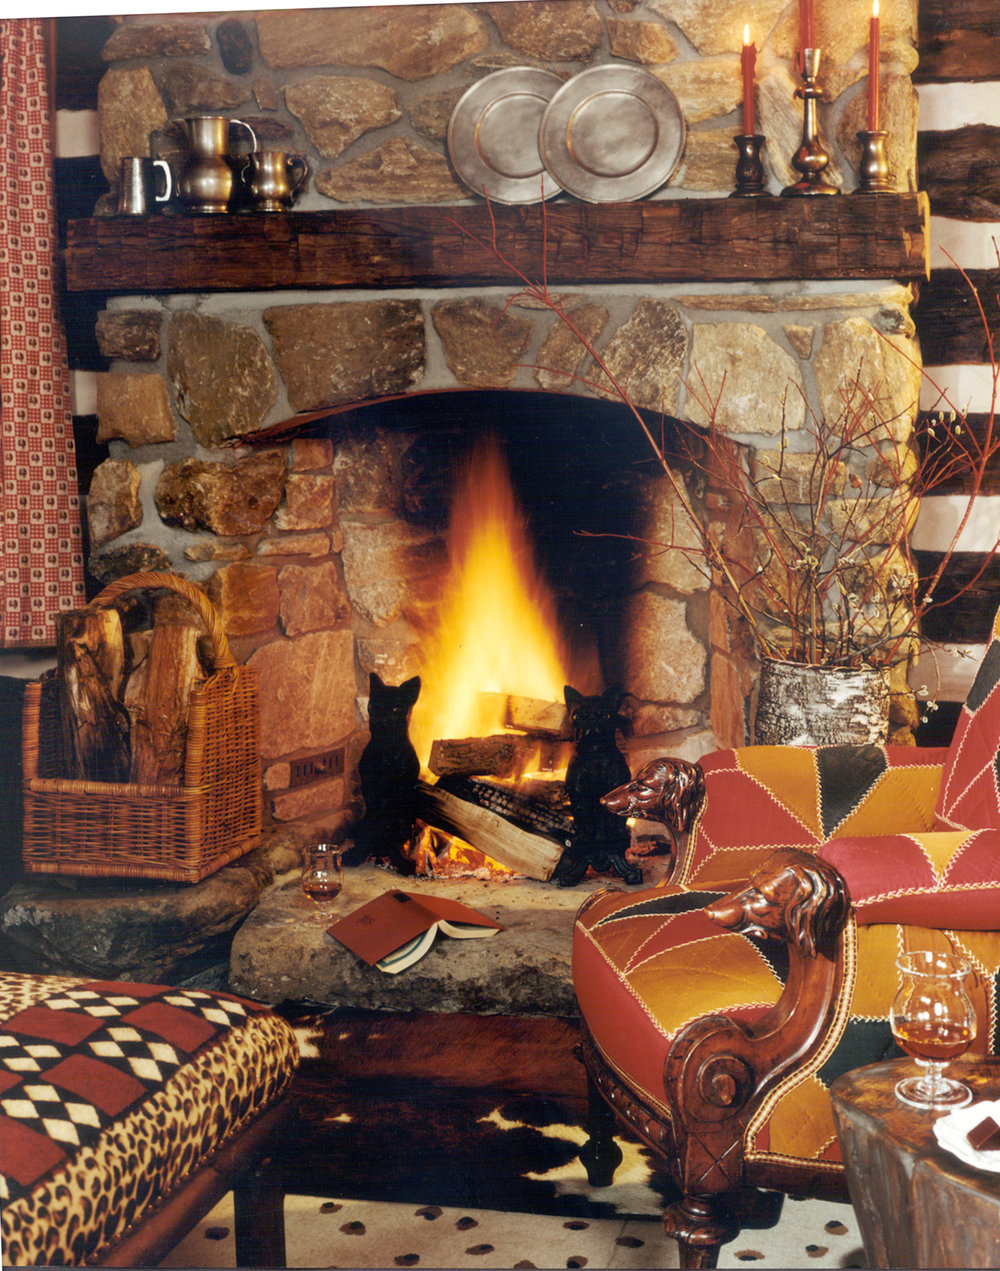 Log Cabin fireplace.jpg